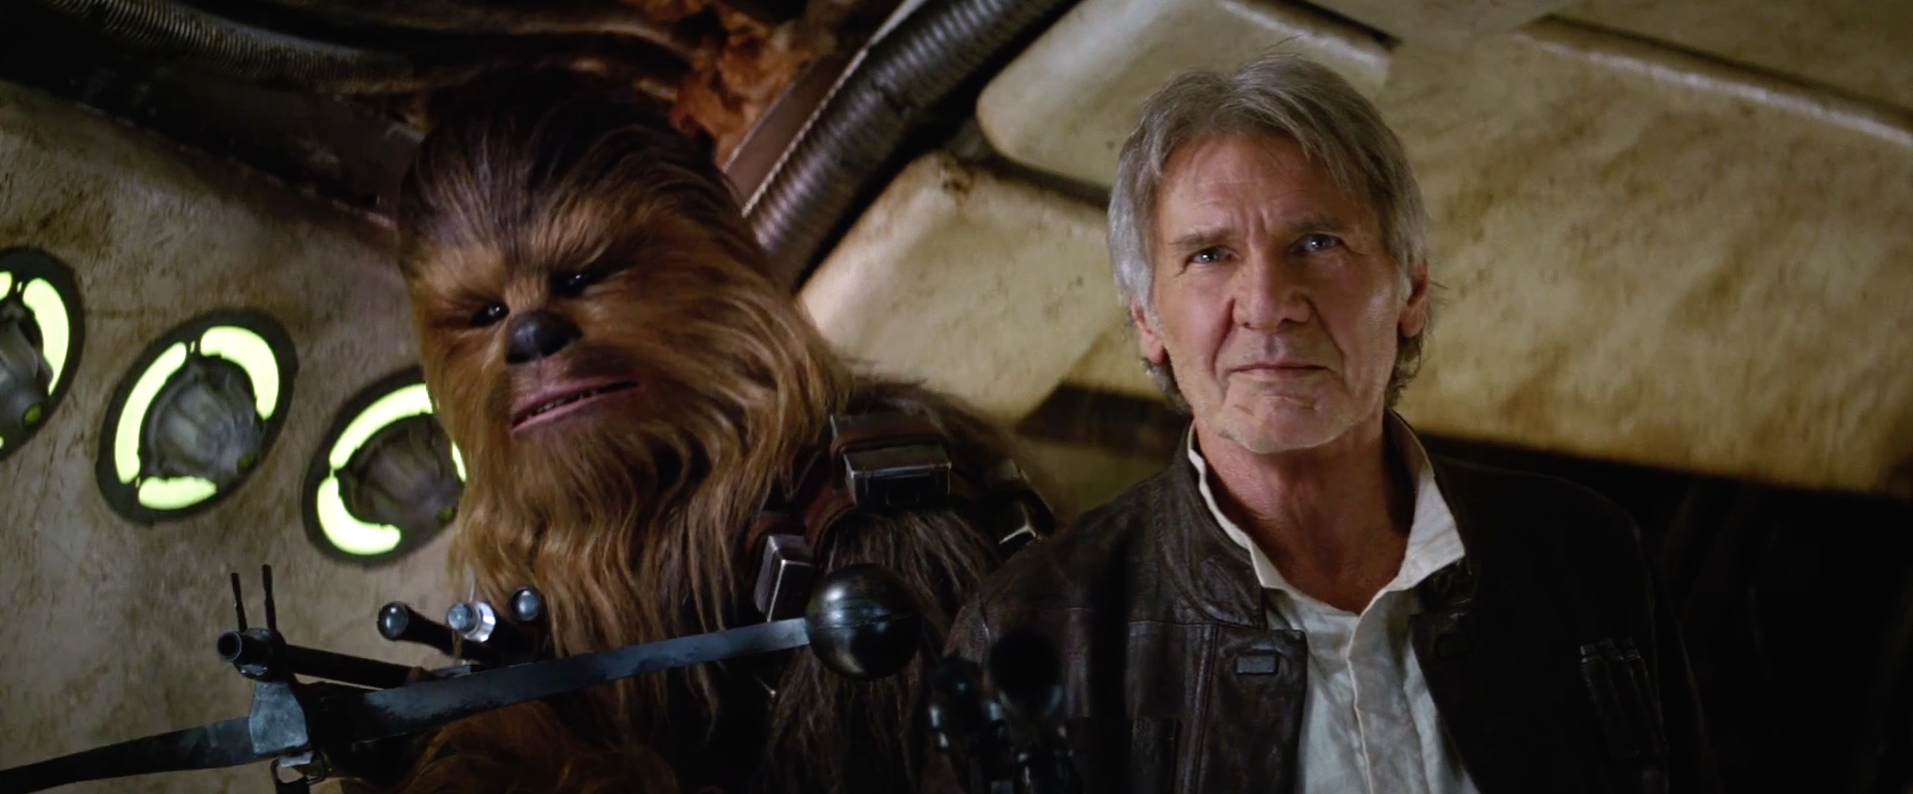 Star Wars: The Force Awakens behind the scenes footage includes Han Freaking Solo